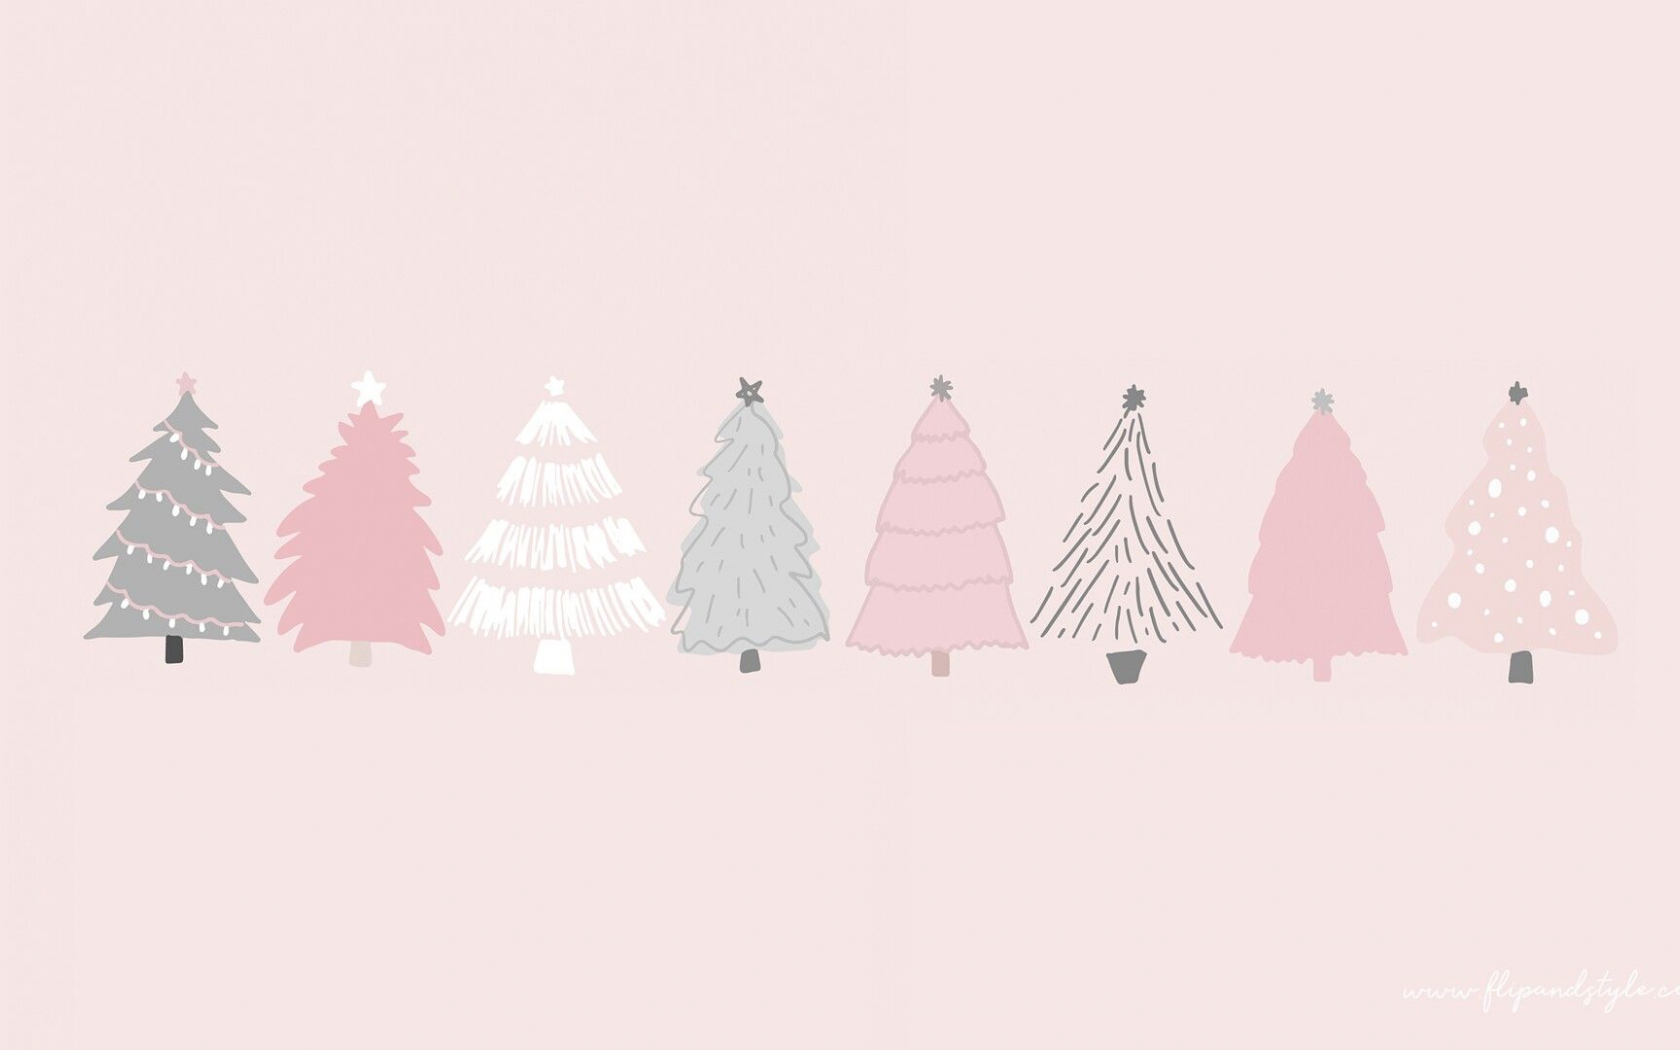 free download christmas aesthetic tumblr computer wallpapers top 1920x1080 for your desktop mobile tablet explore 34 christmas aesthetic wallpapers christmas aesthetic wallpapers aesthetic wallpaper christmas aesthetic wallpaper christmas aesthetic wallpapers